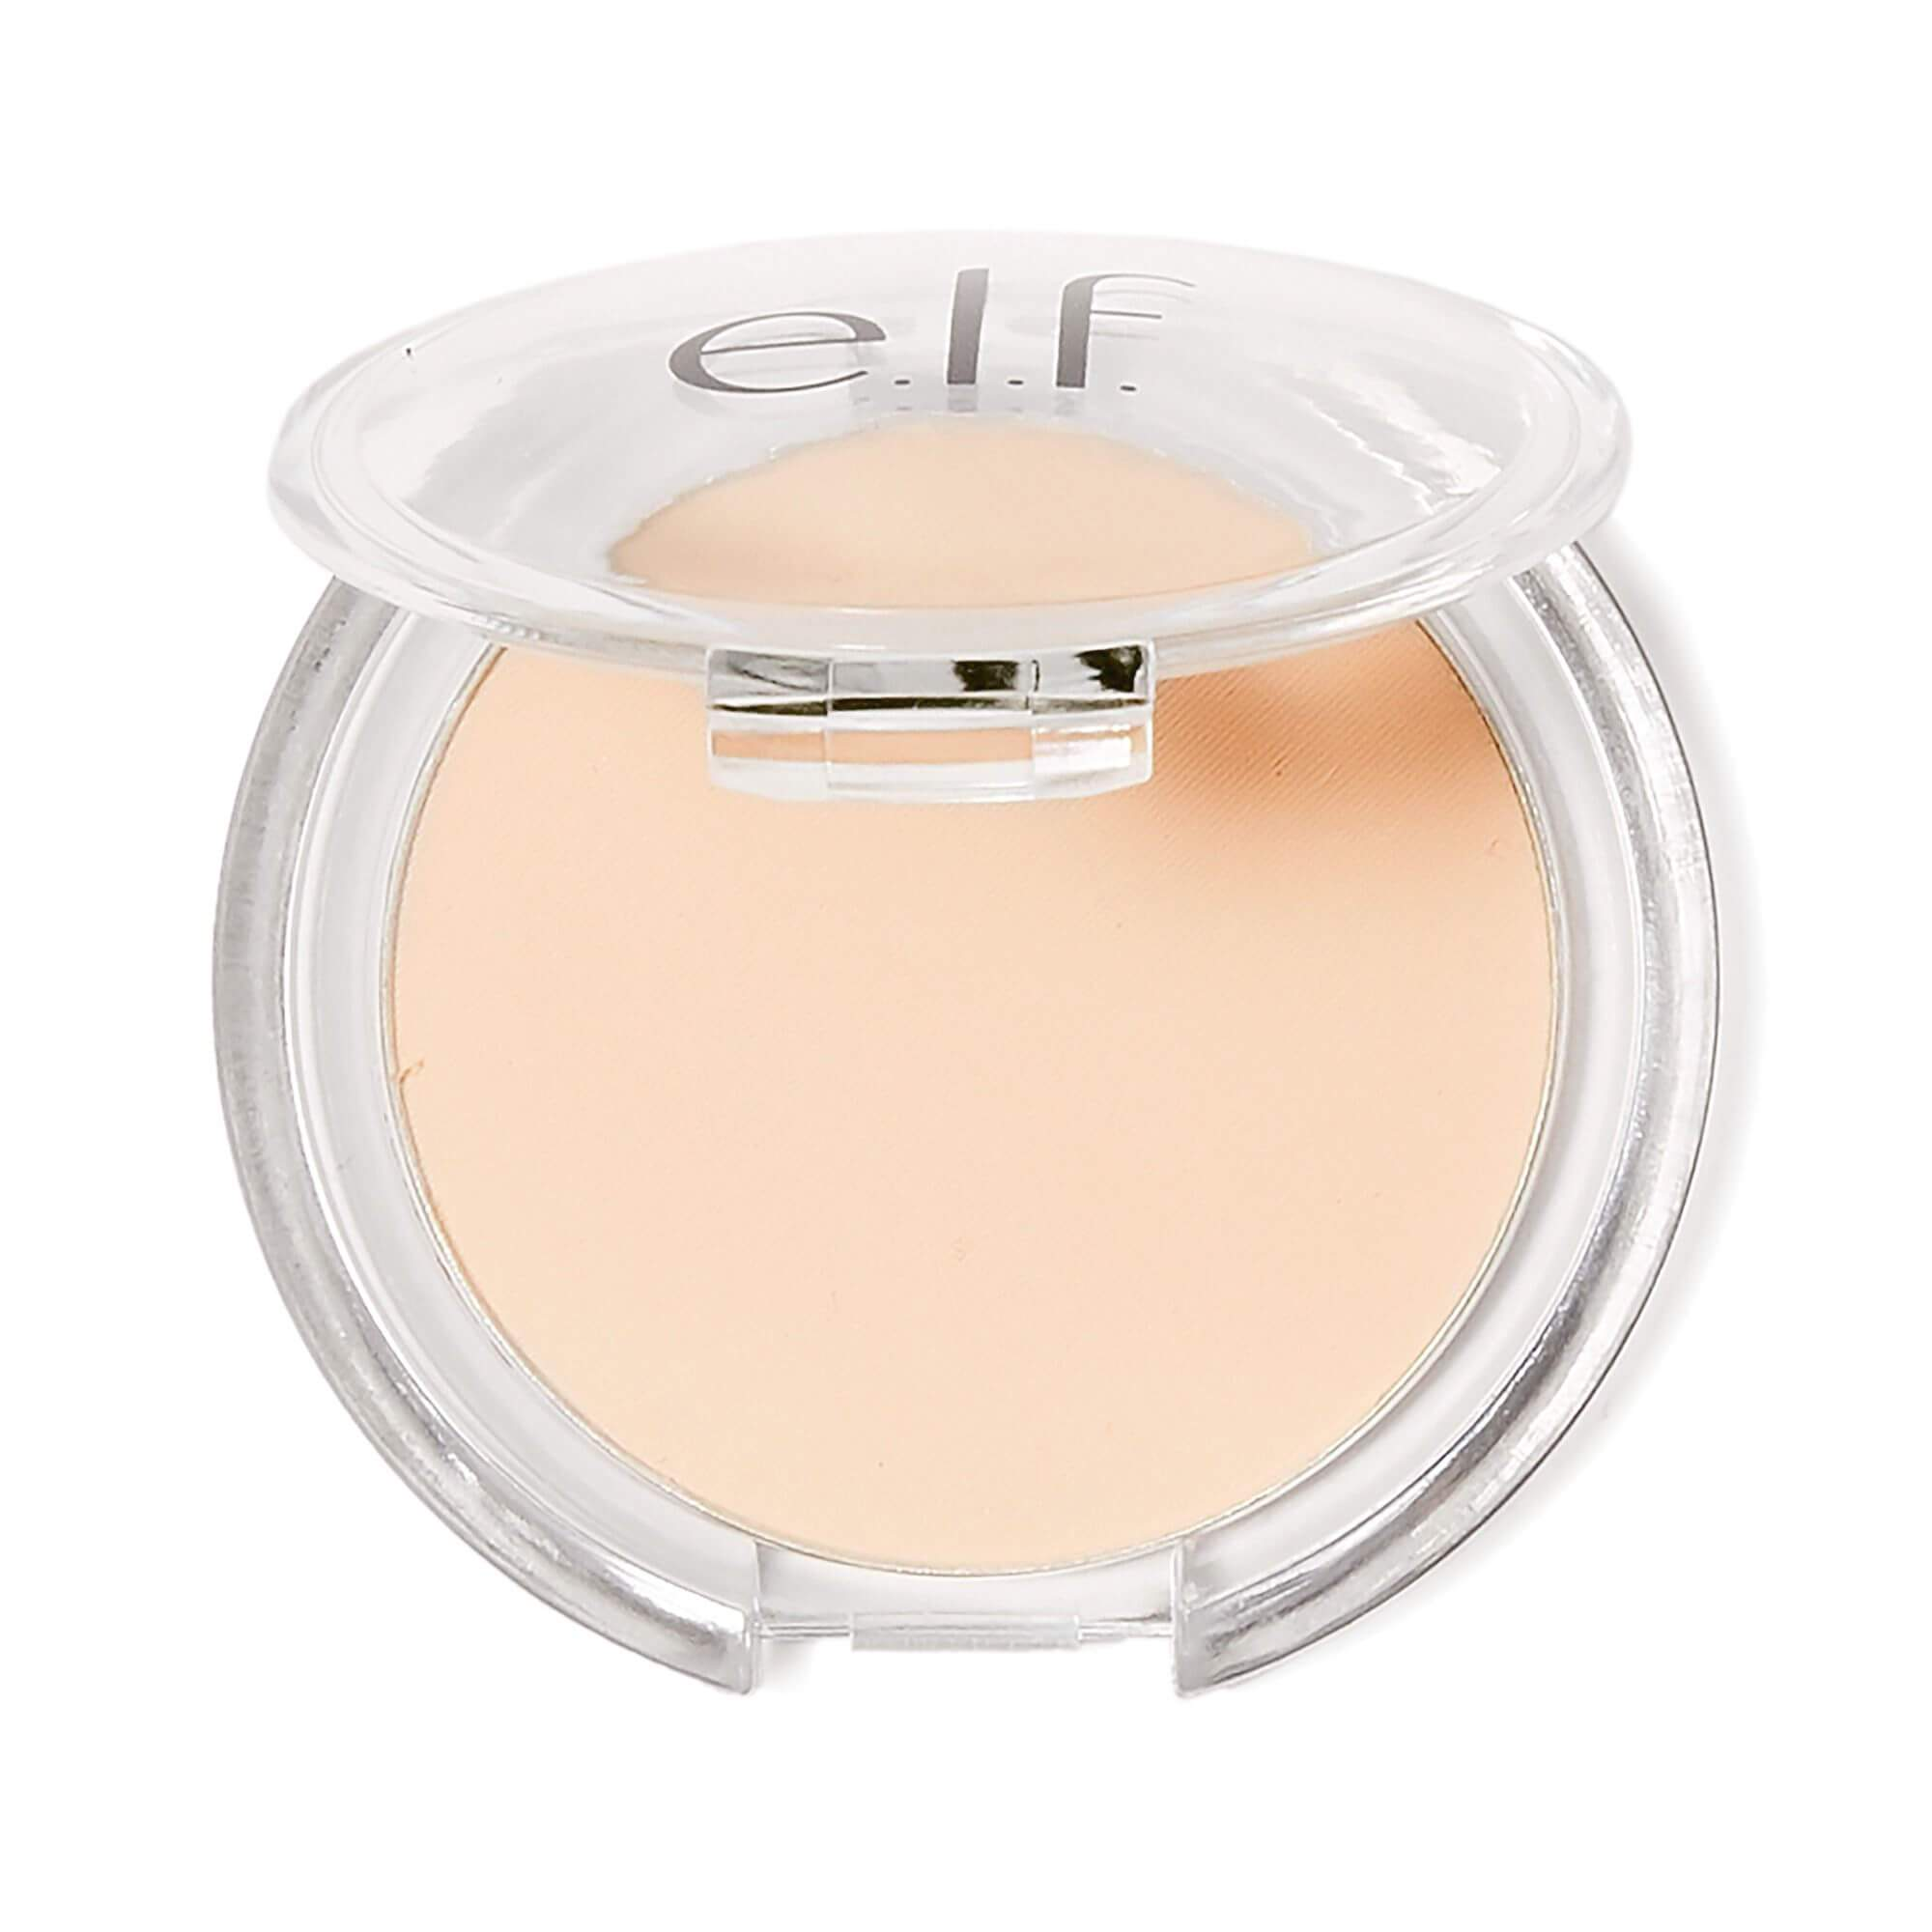 ELF Prime Stay Finishing Powder